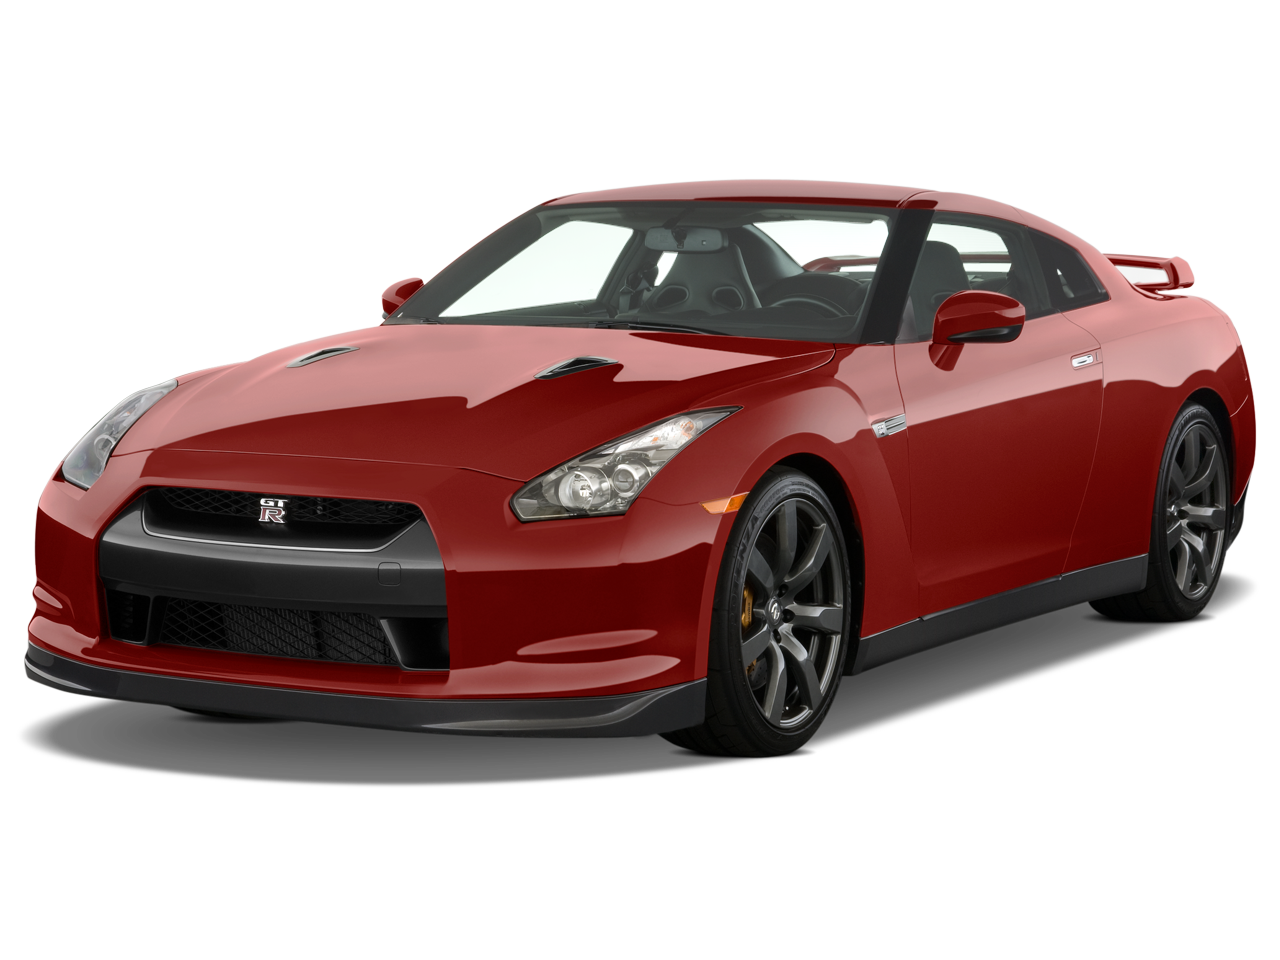 2017 Nissan Gt R Msrp >> California Shop Transforms Nissan GT-R With Carbon-Fiber Body Parts, 600 HP